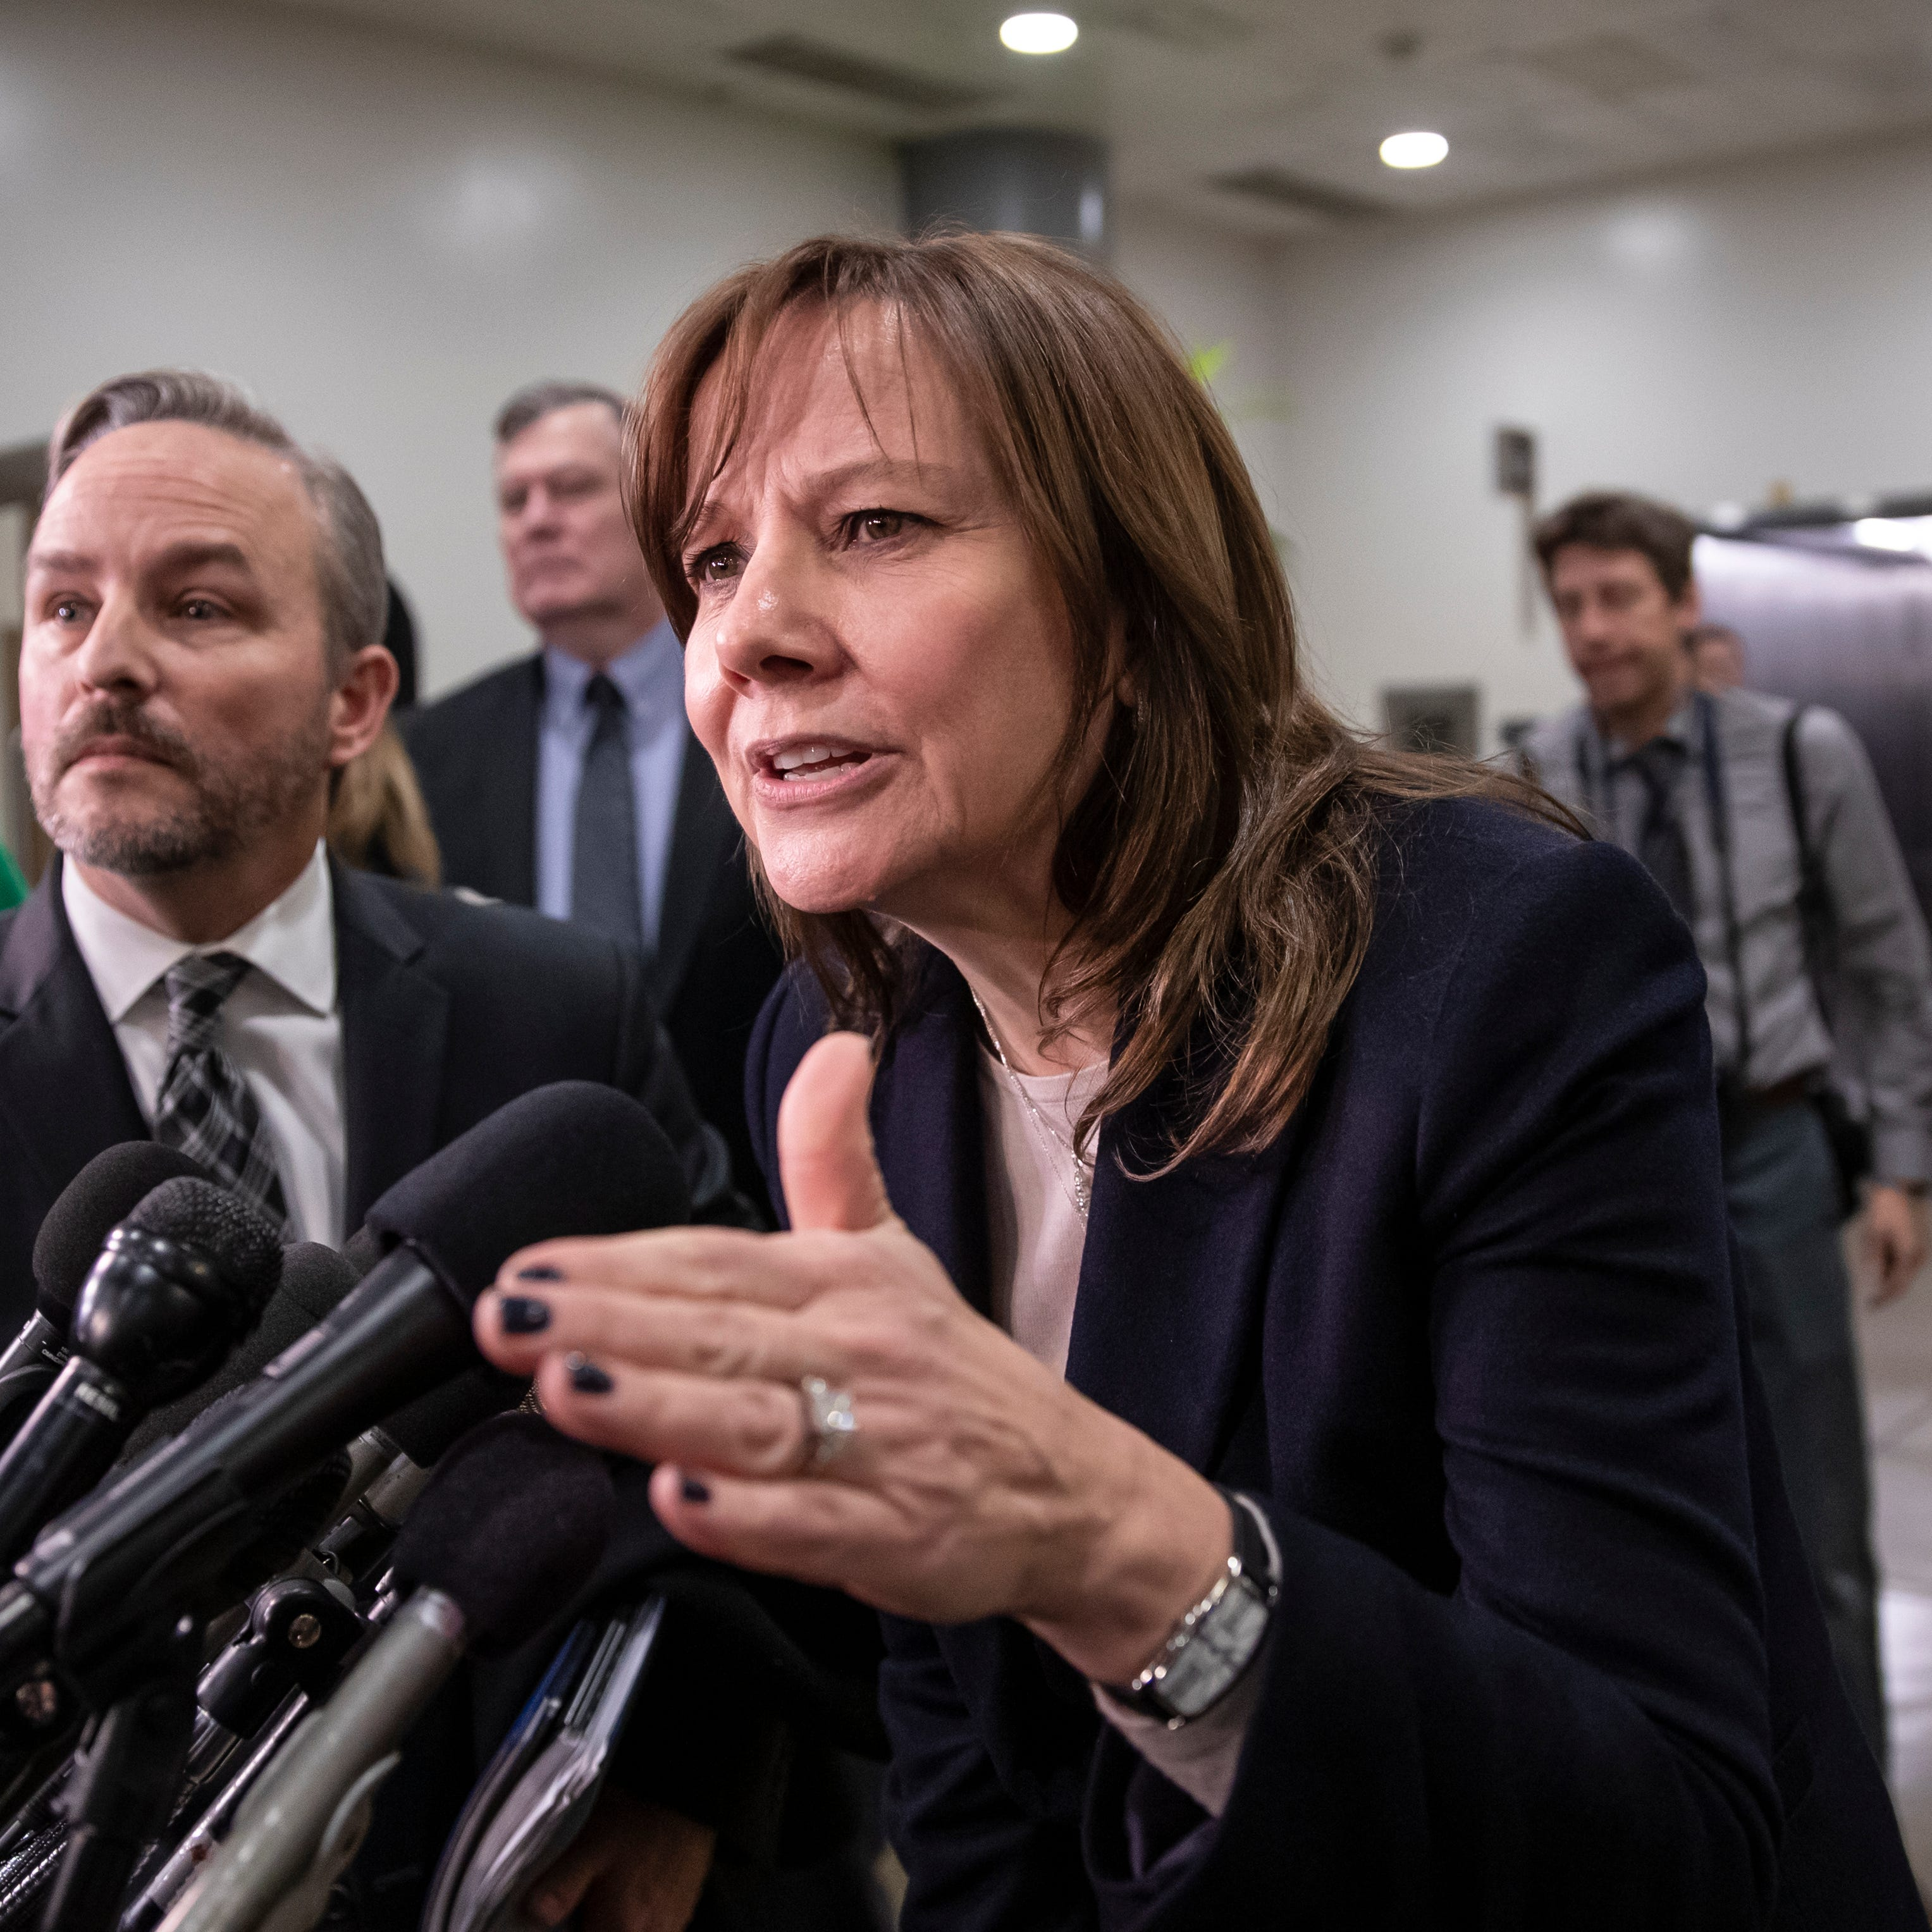 New GM faces old headwinds in D.C.